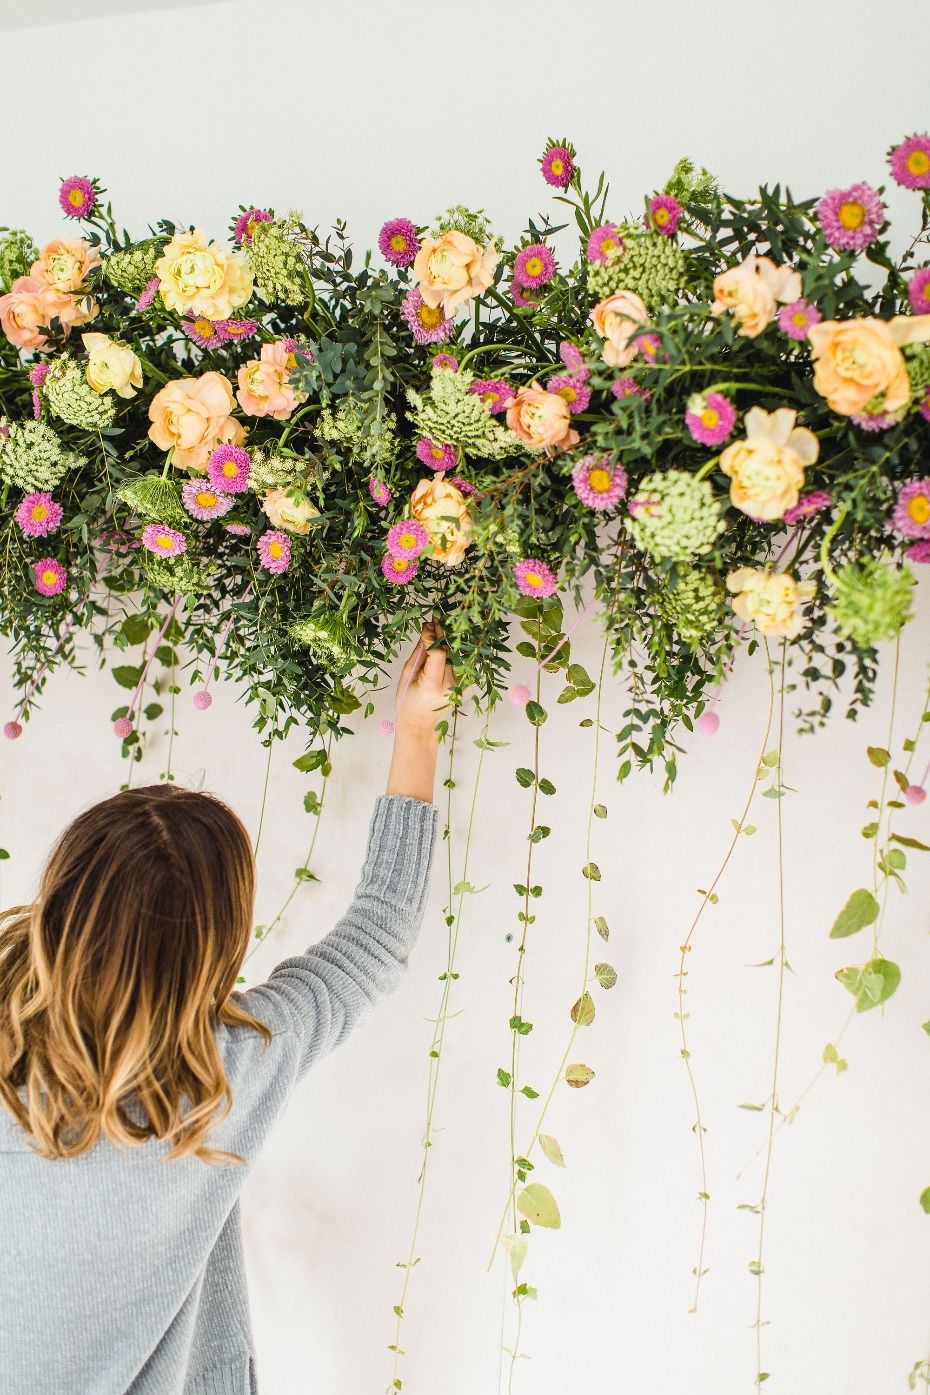 How To Make A Flower Photo Booth Backdrop With Fiftyflowers Com Diy Photo Booth Backdrop Photo Booth Backdrop Floral Backdrop Wedding